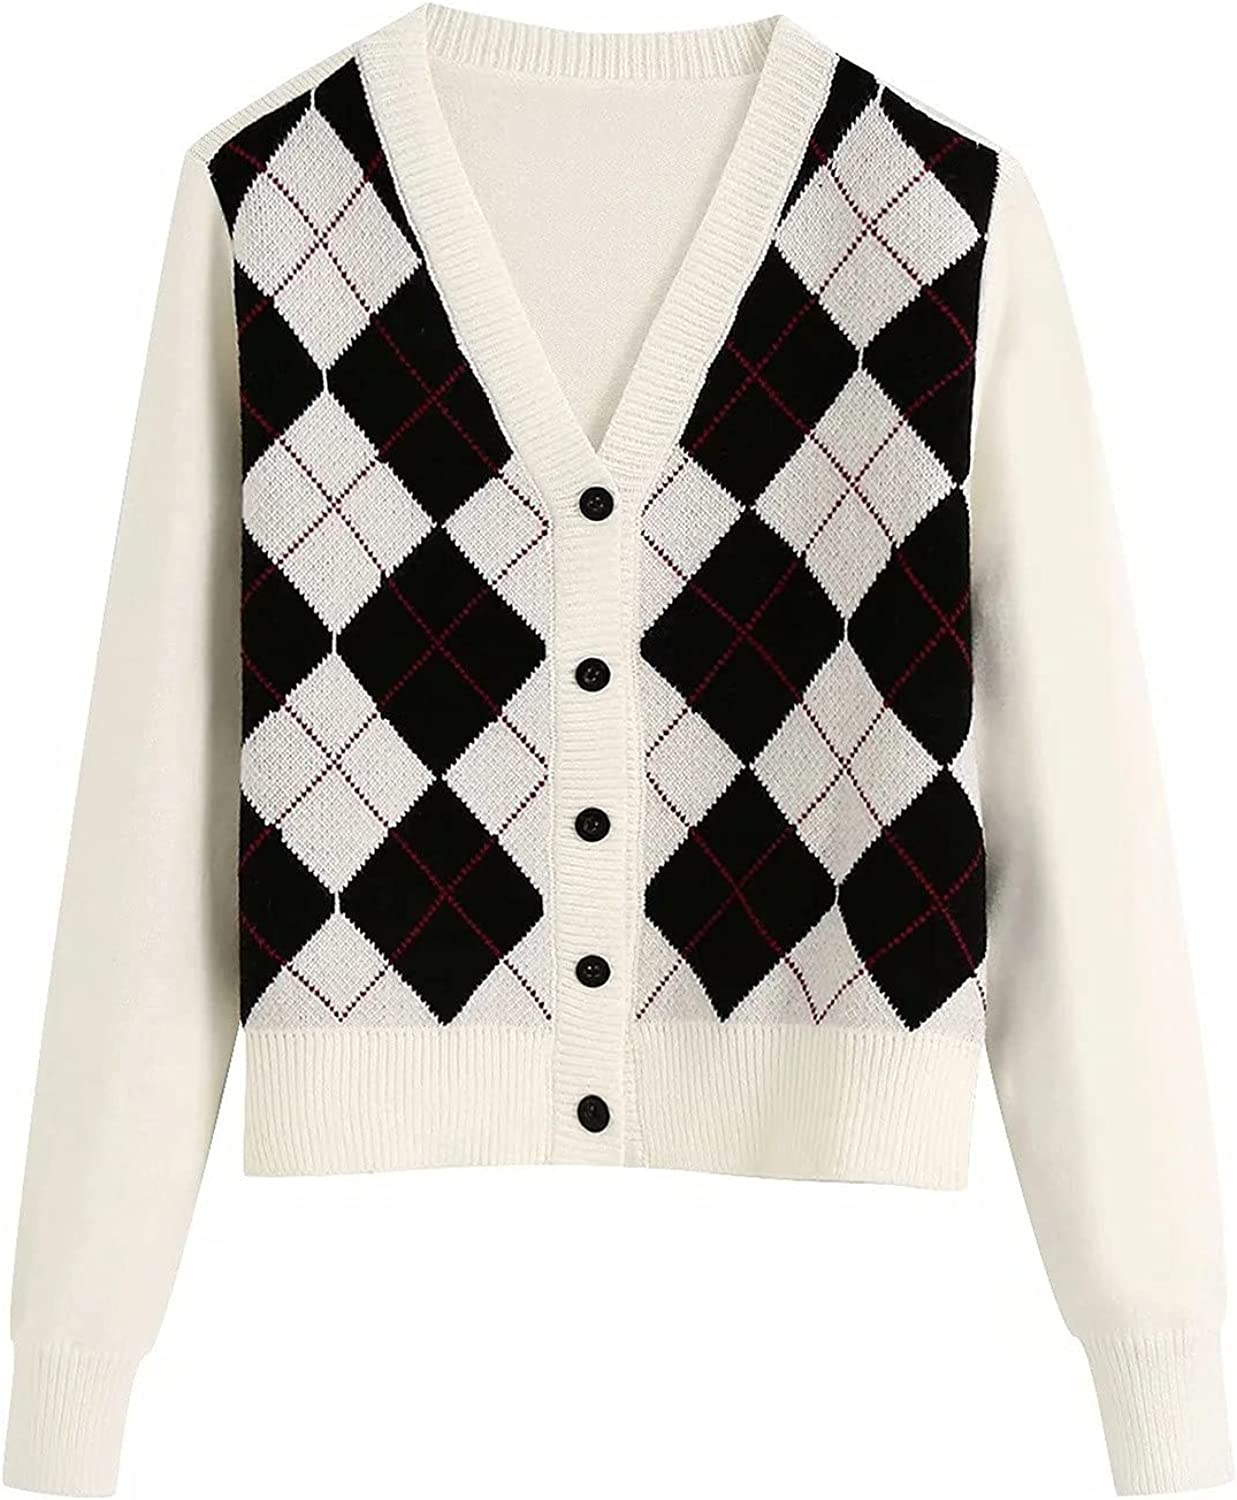 YQRDSHJS Sweater Cardigan For Women Long Sleeve Fashion Casual Loose Comfy Argyle Pattern England Style Cropped Sweater Tops